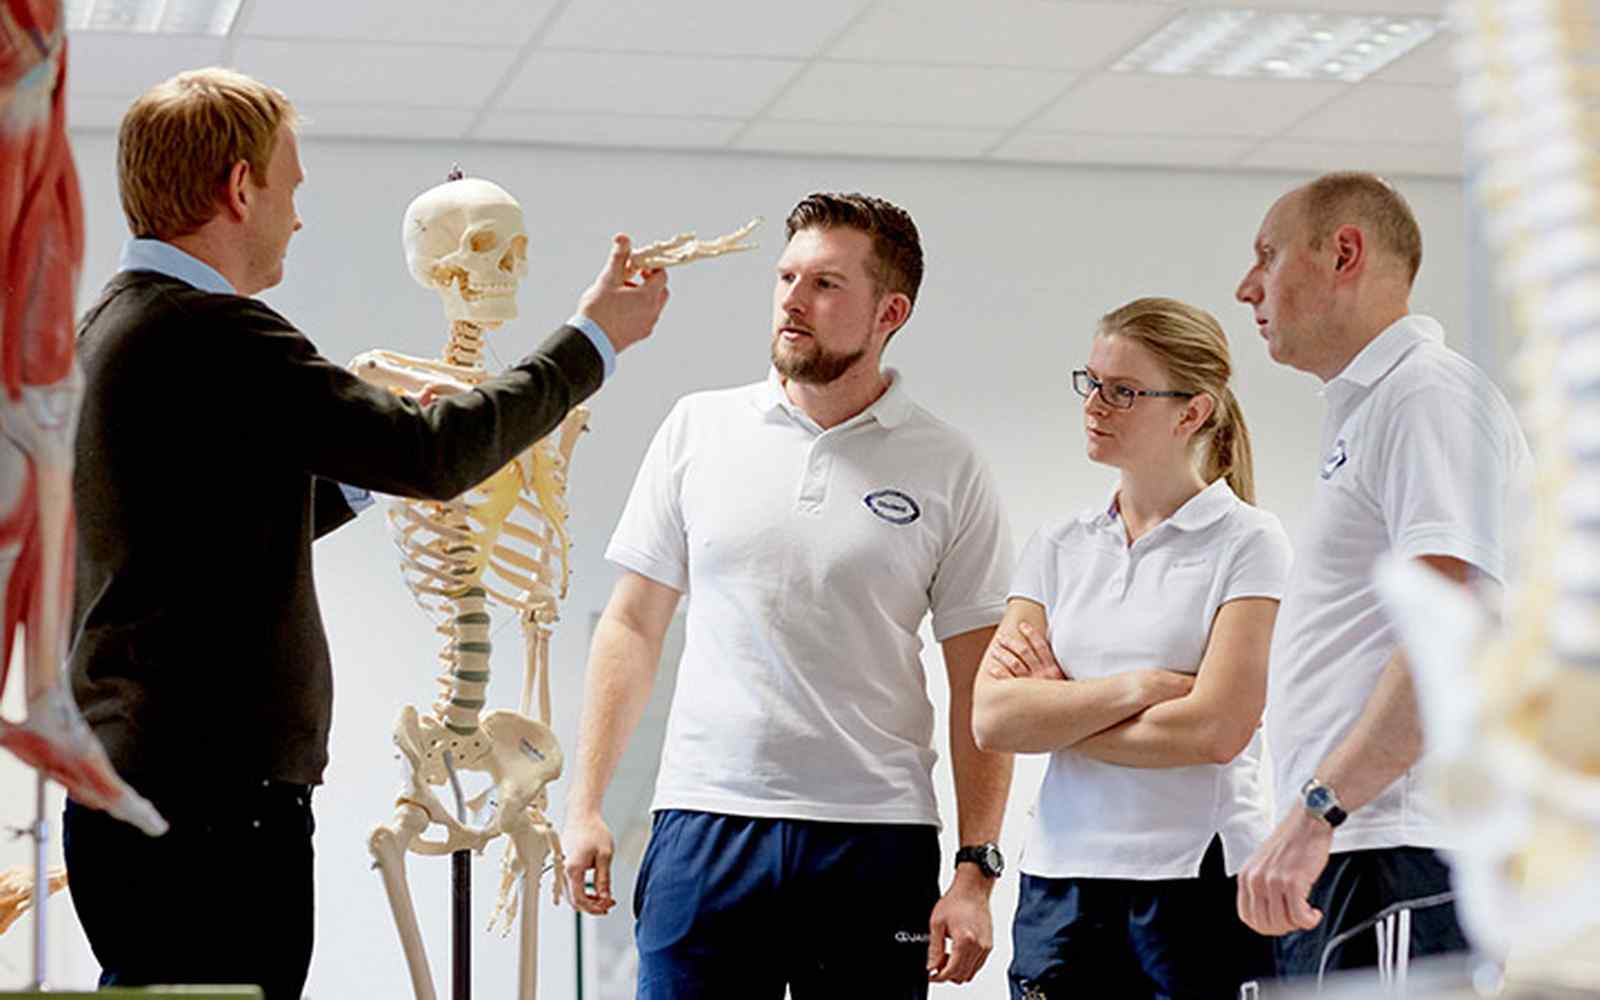 Physiotherapy demonstration